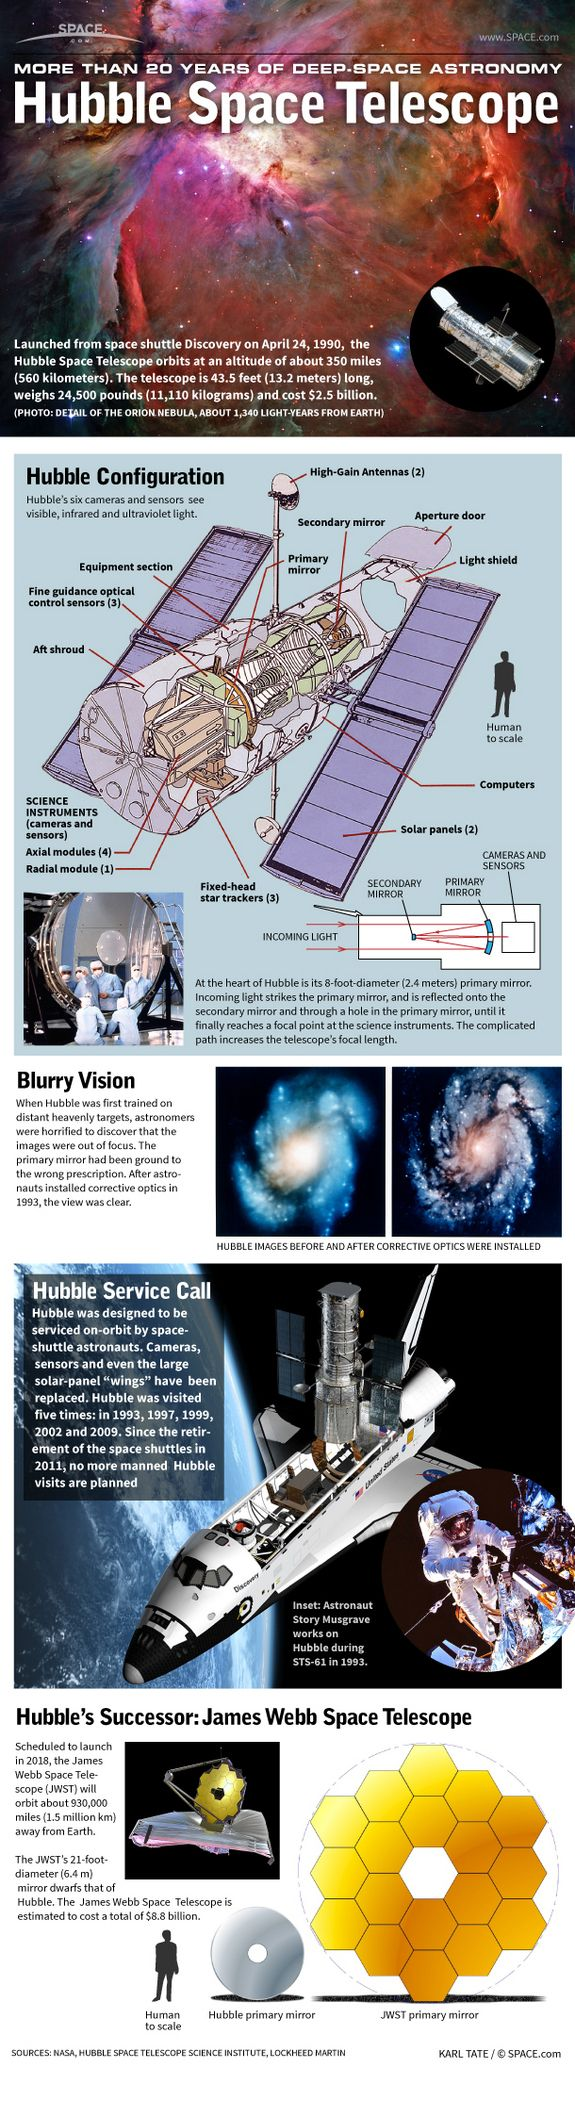 How the Hubble Space Telescope Works (Infographic) by Karl Tate, SPACE.com Infographics Artist